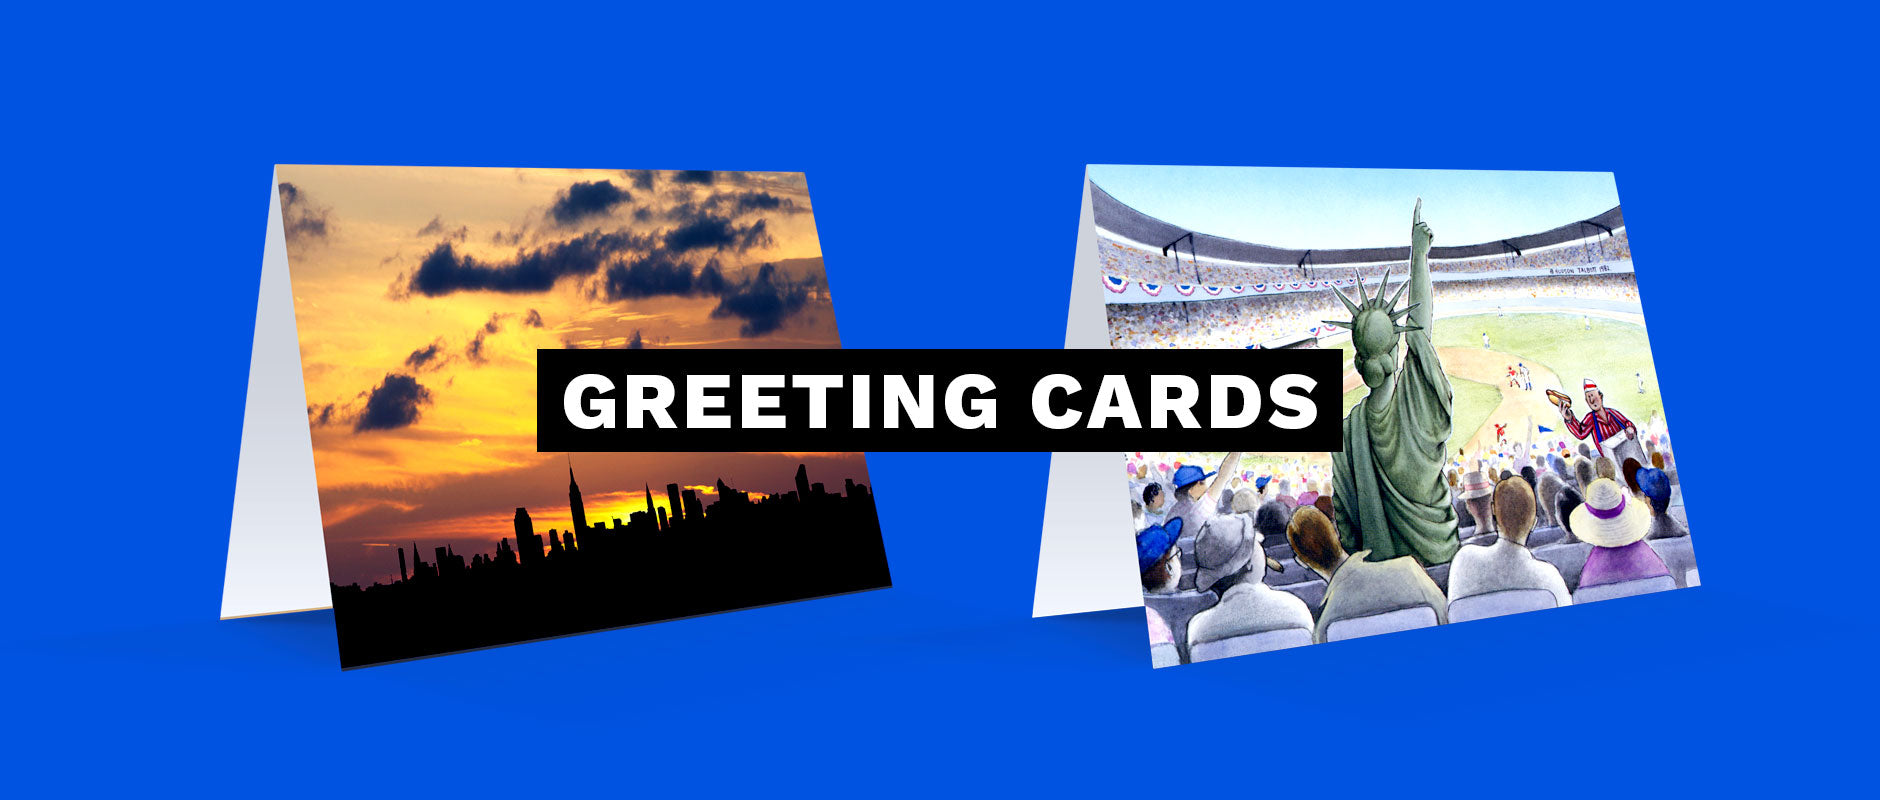 Greeting Cards Easy Street